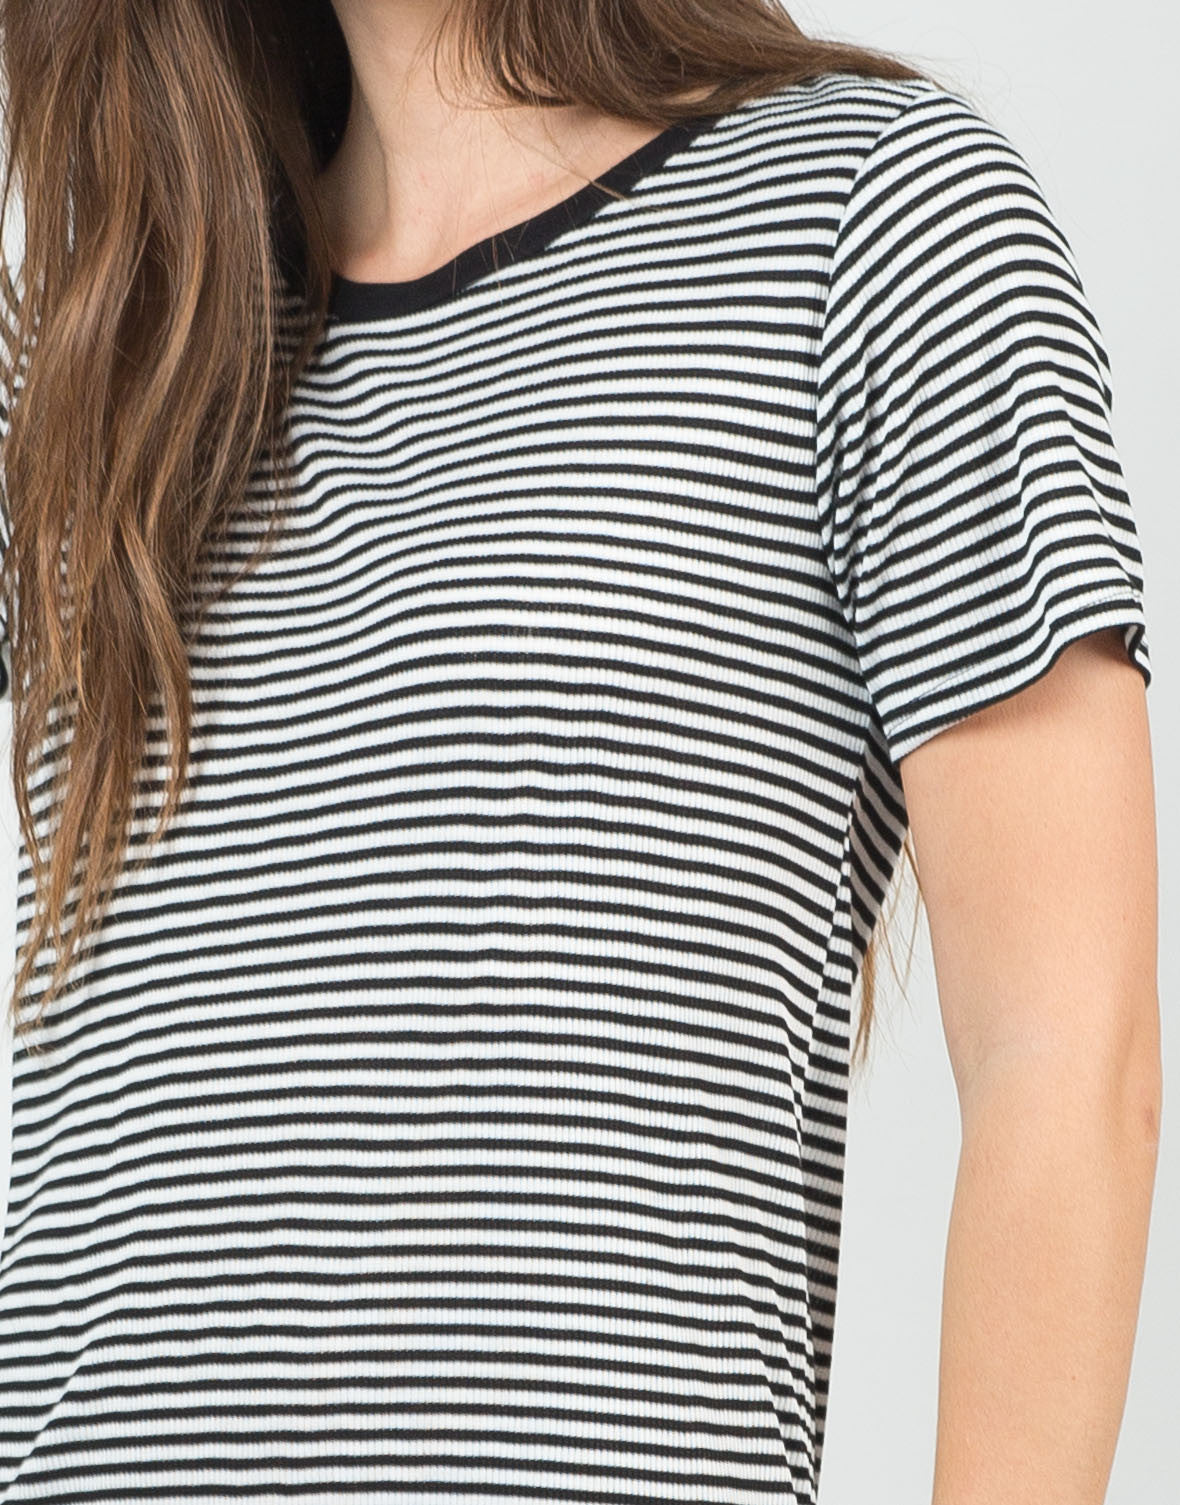 Detail of Pin Striped Shirt Dress